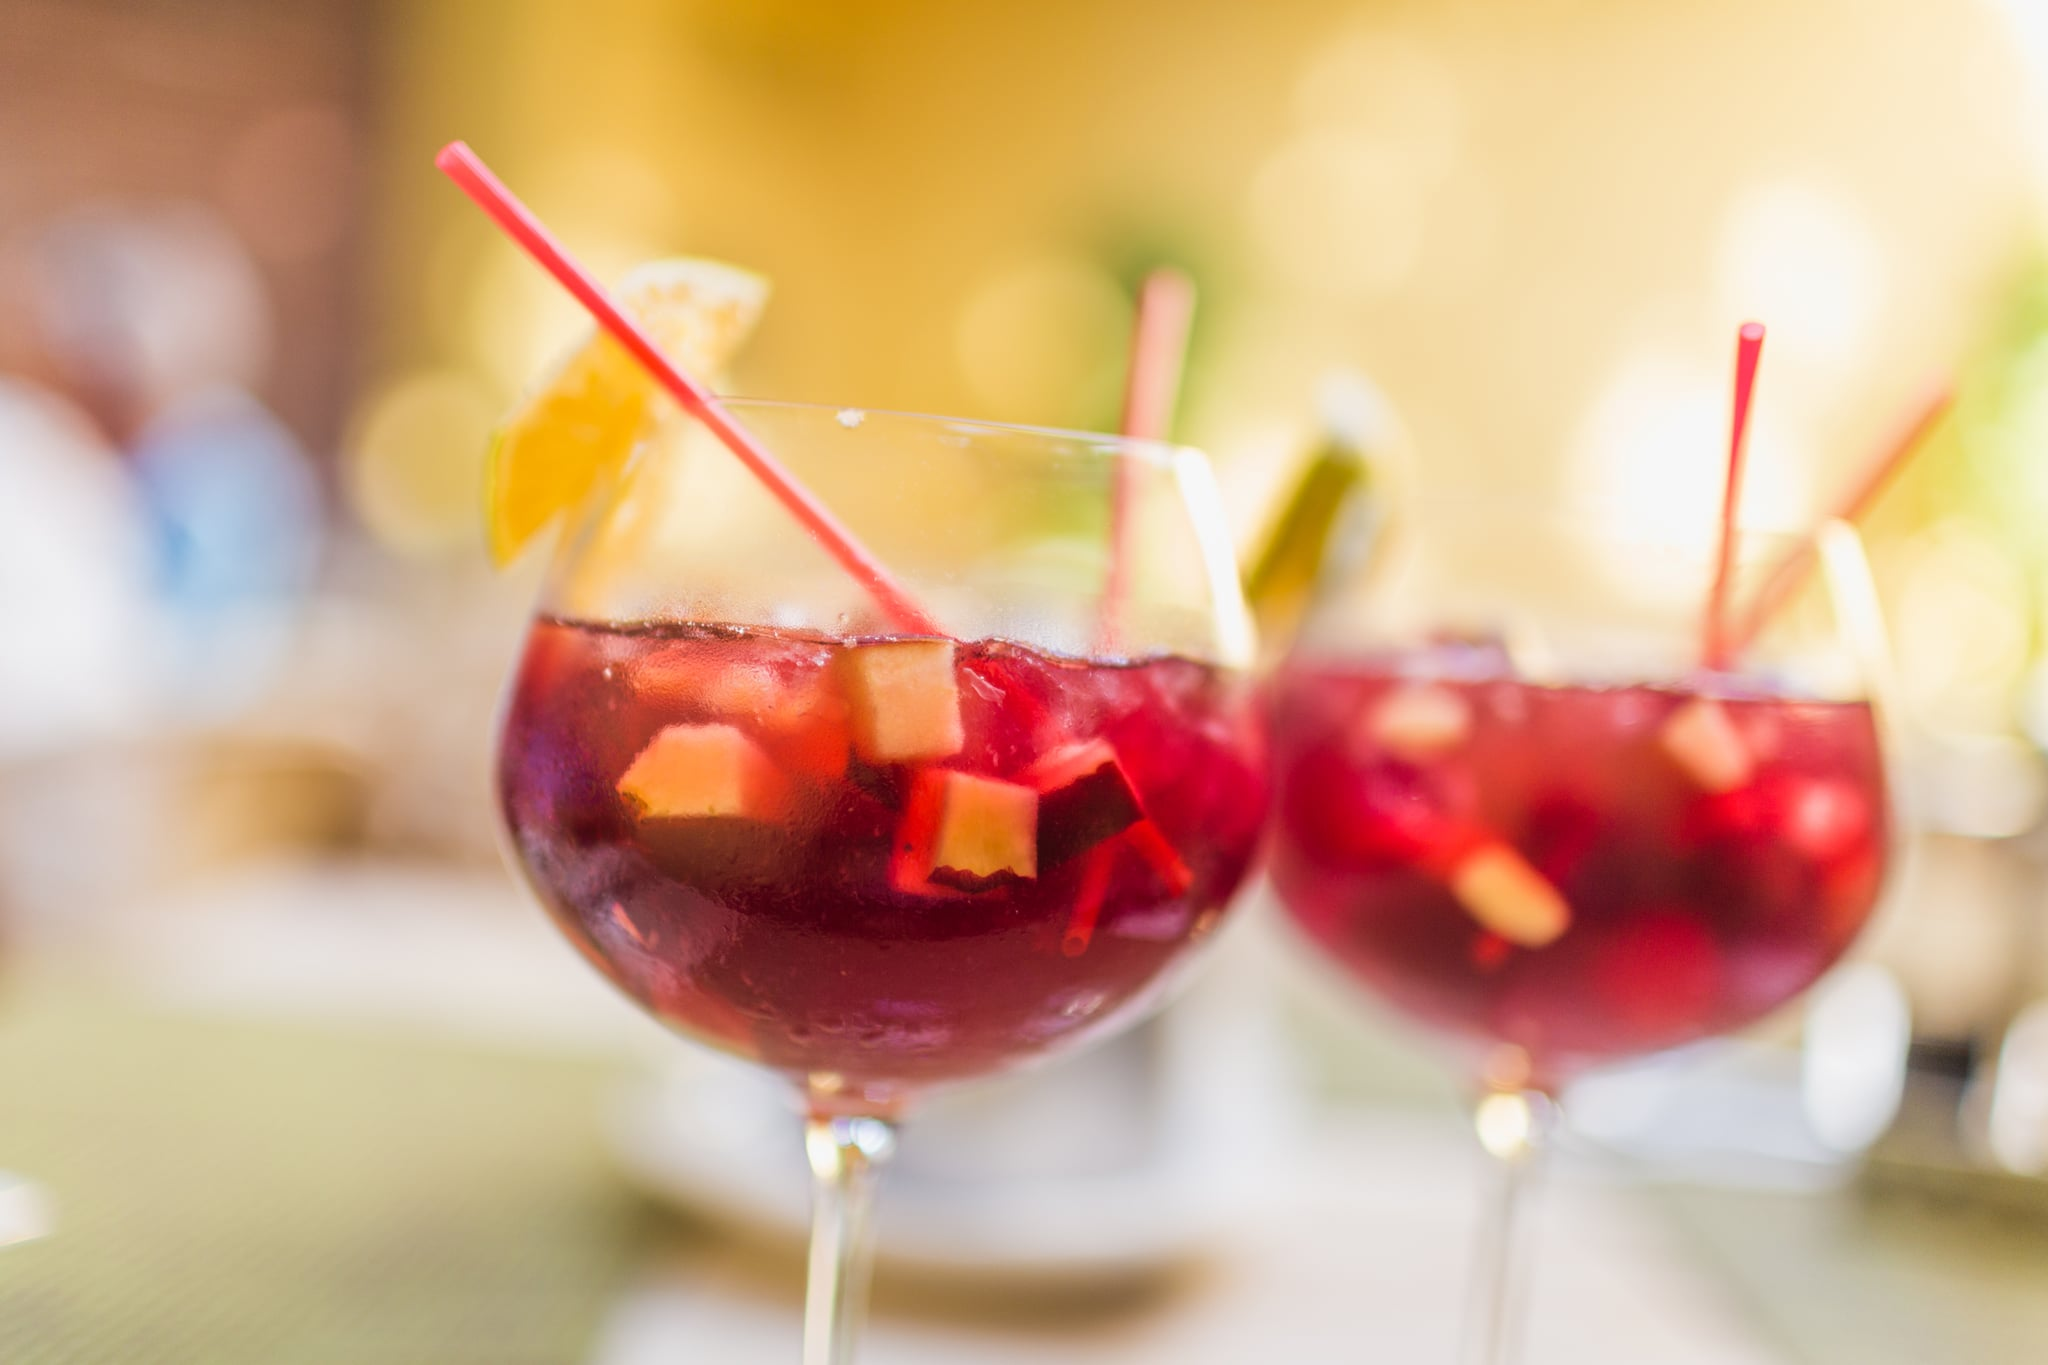 Bottoms Up! The Best Fruits to Add to Red, White, and Sparkling Sangria